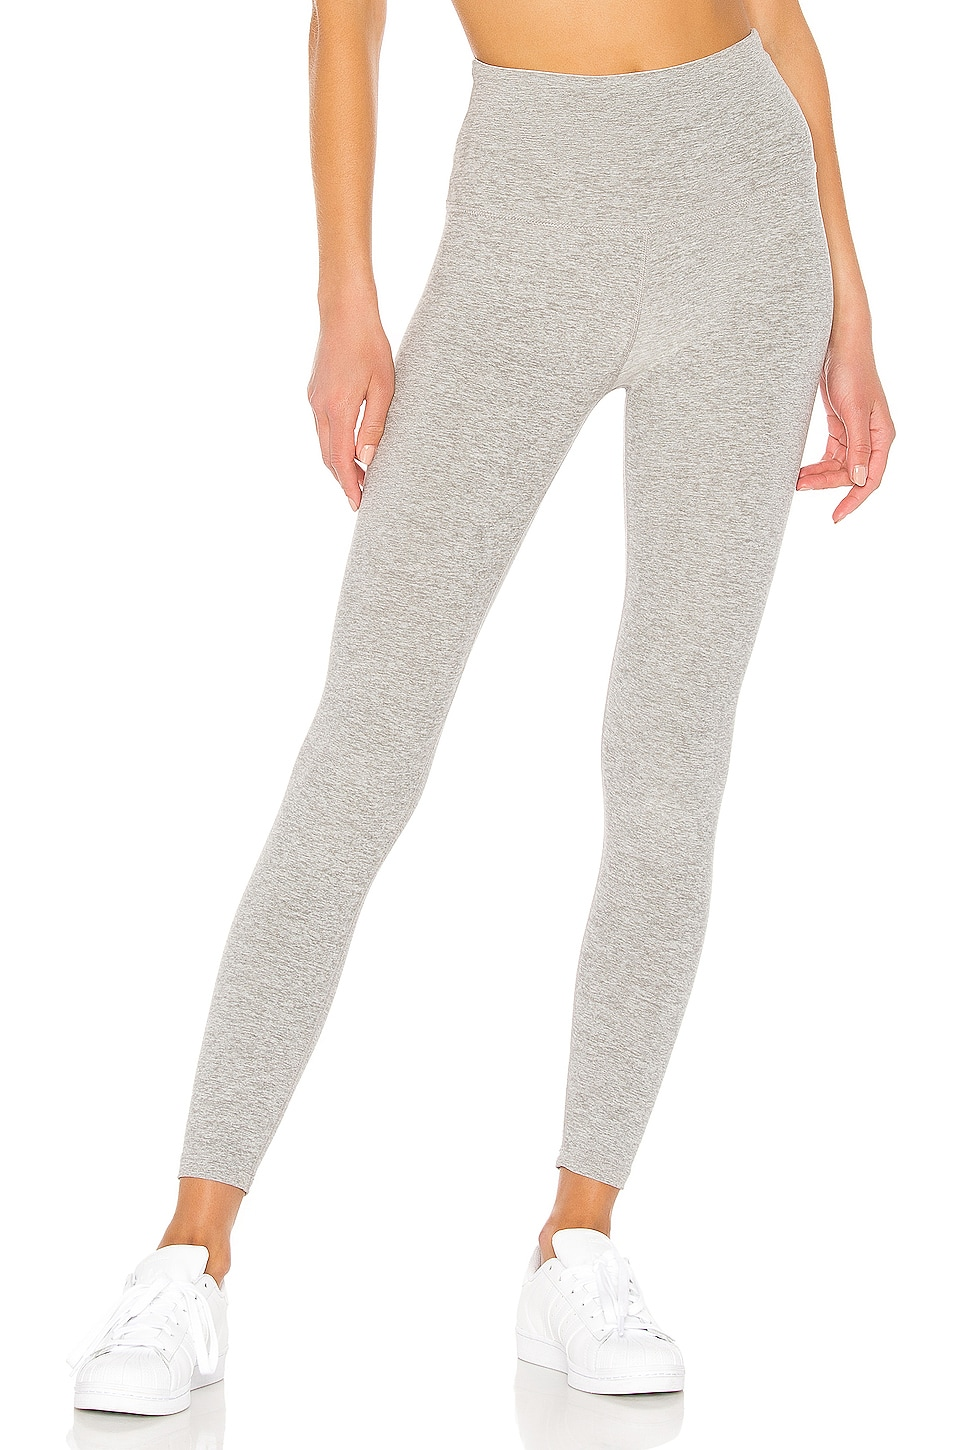 Beyond Yoga Spacedye Caught In The Midi High Waisted Legging in Silver Mist